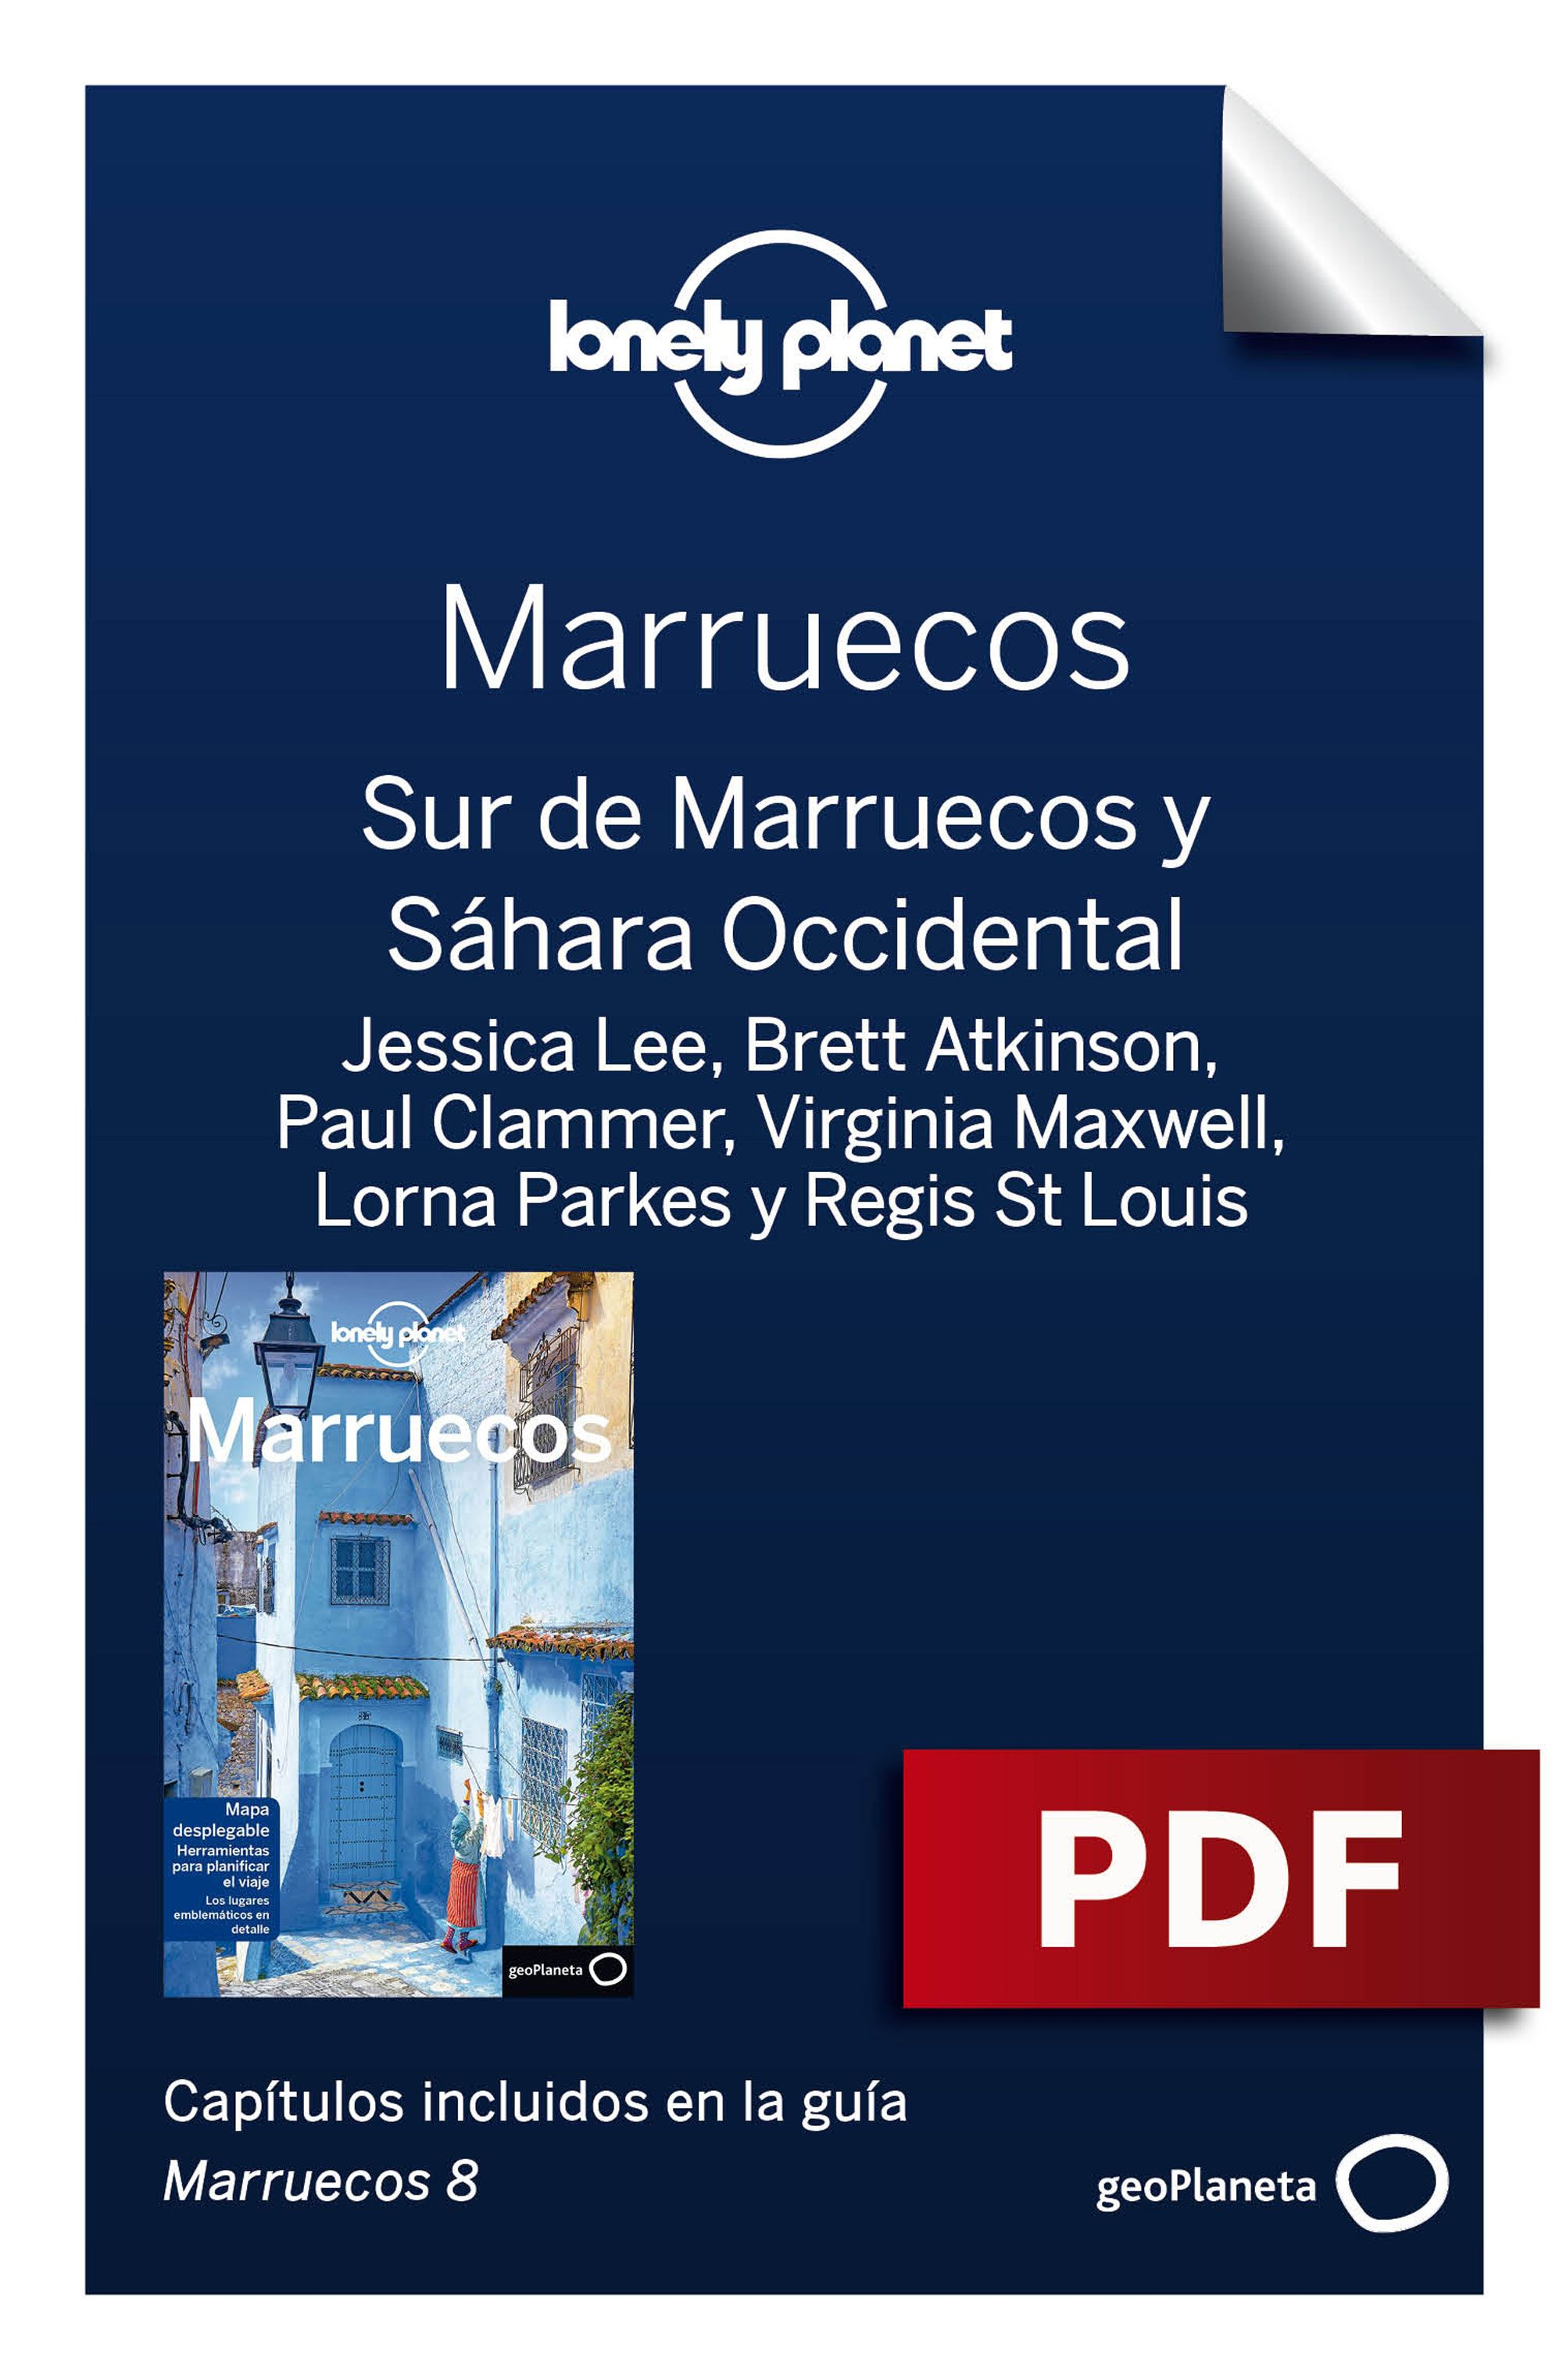 Sur de Marruecos y Sáhara Occidental